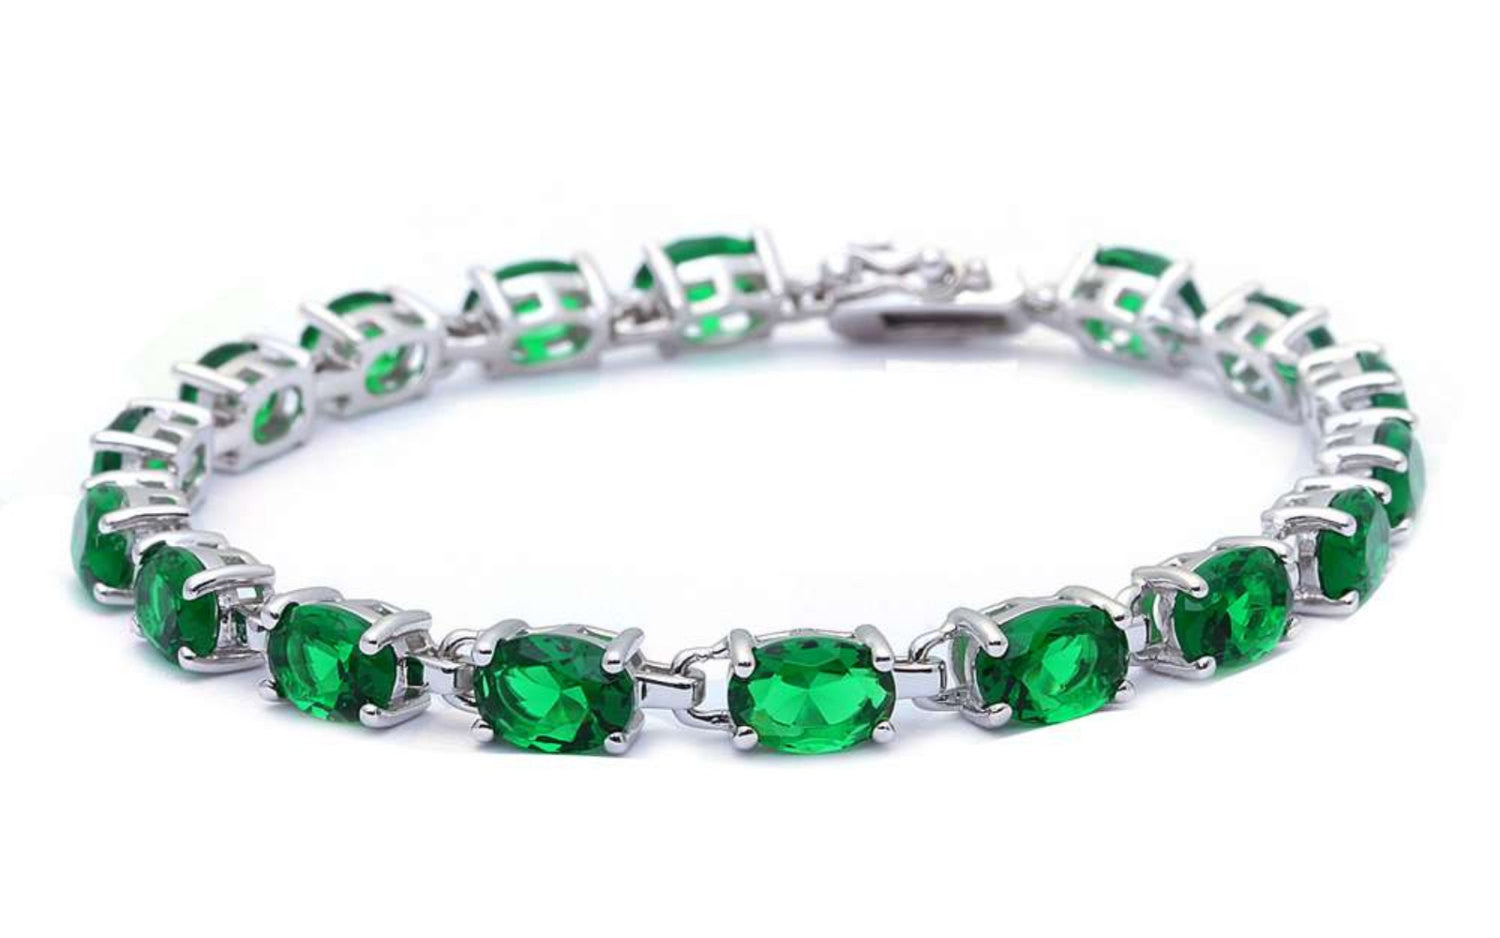 Ladies Classic Tennis Bracelet 13.5 Carat Oval Cut Emerald Green CZ Solid 925 Sterling Silver Solitaire Wedding Engagement Tennis Bracelet